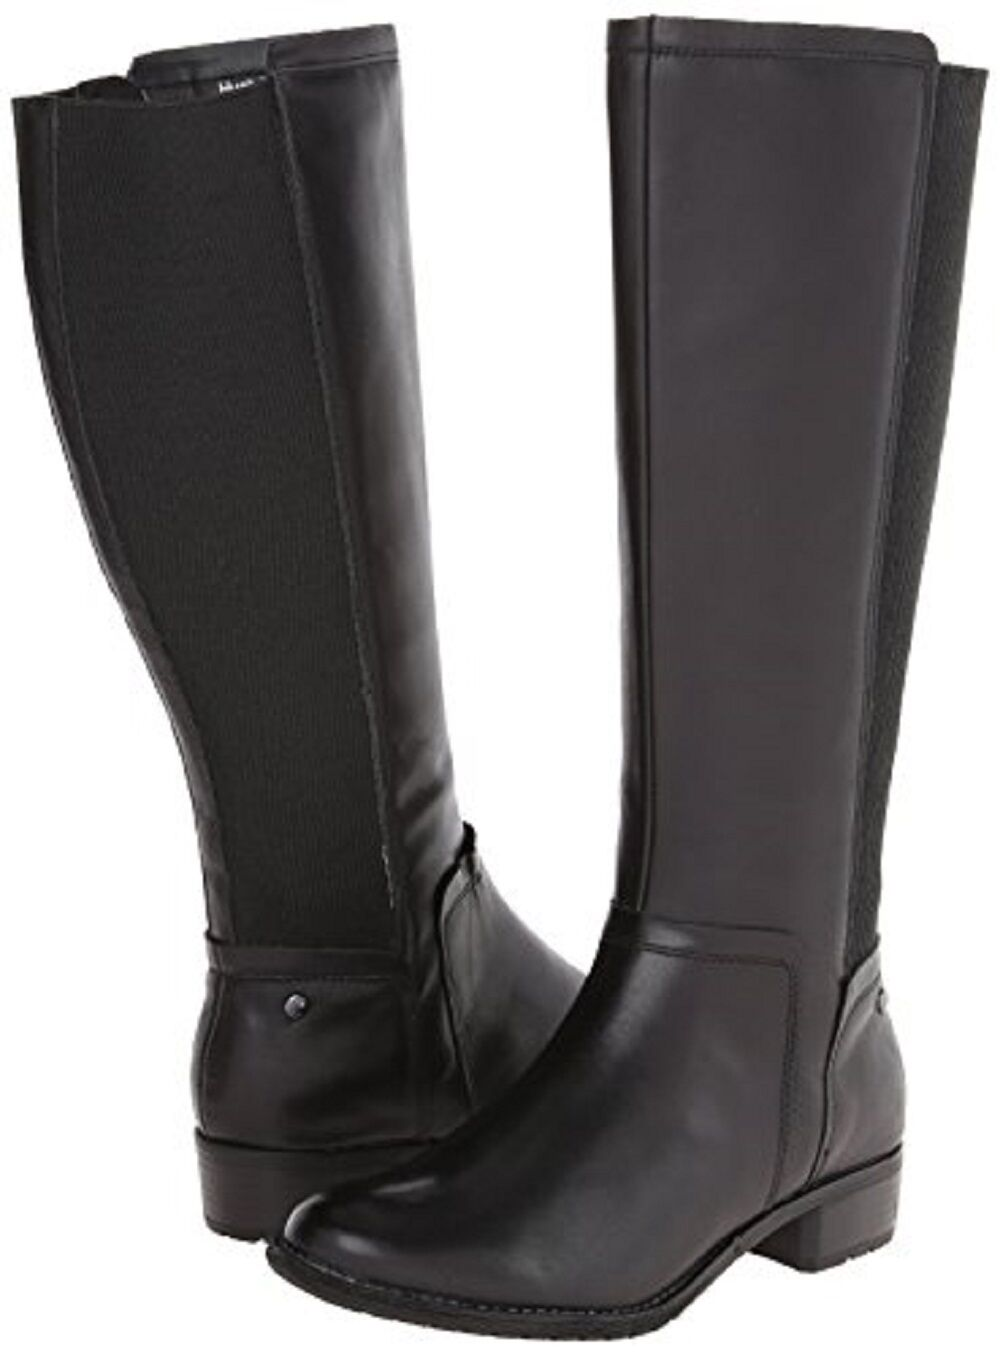 6.5 M Hush Puppies Women's Lindy Chamber Riding Tall Boots Black Waterproof